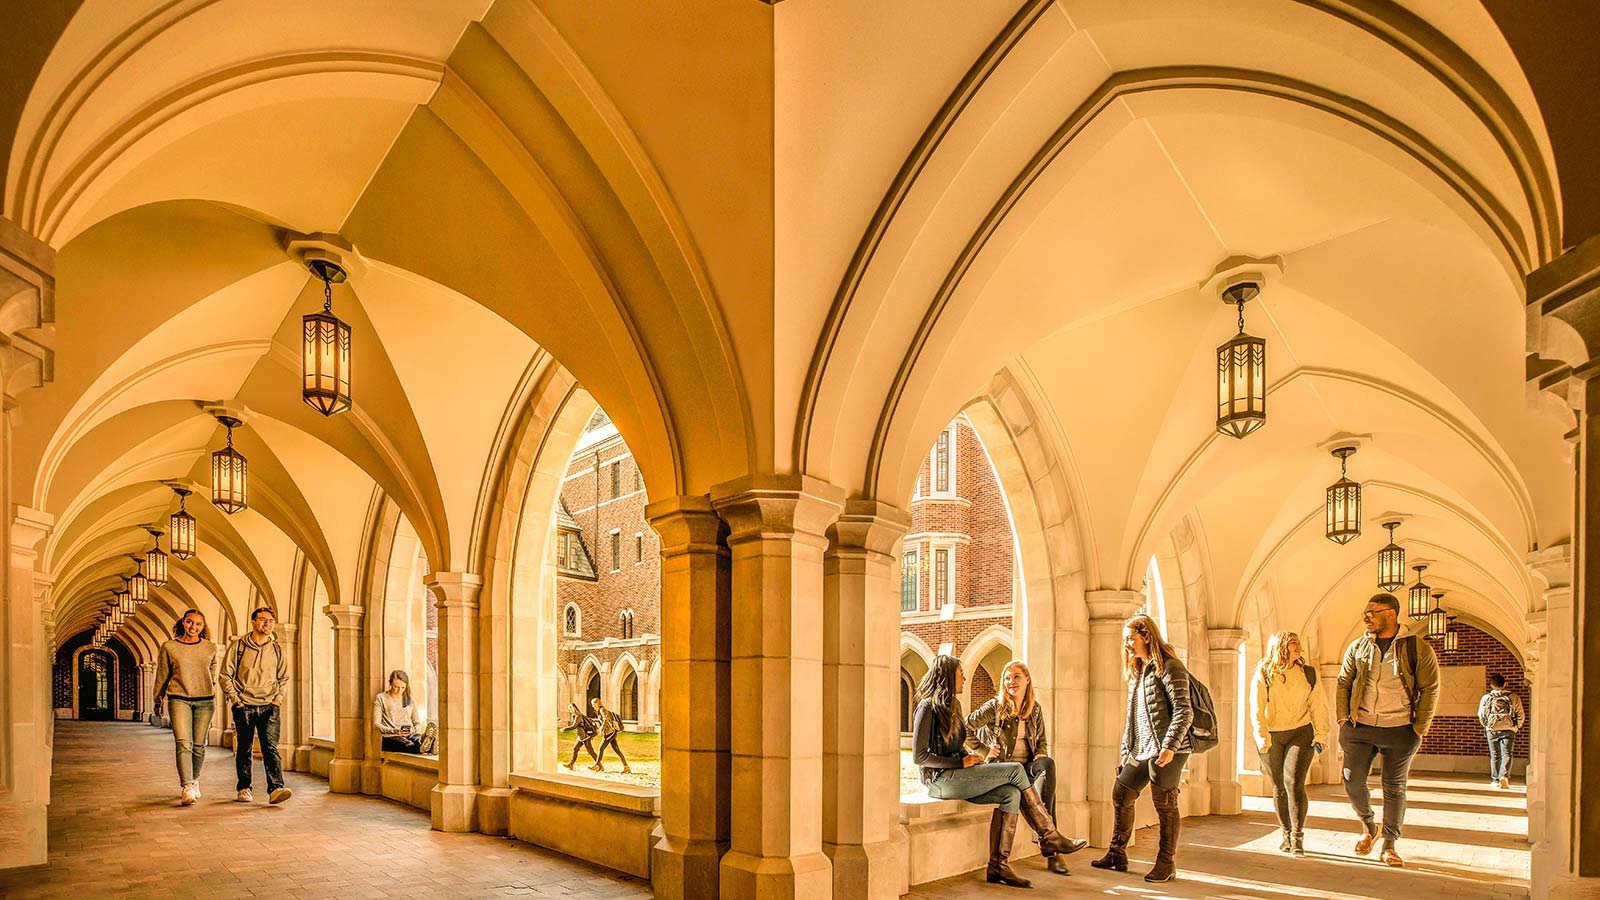 residential colleges architecture with students